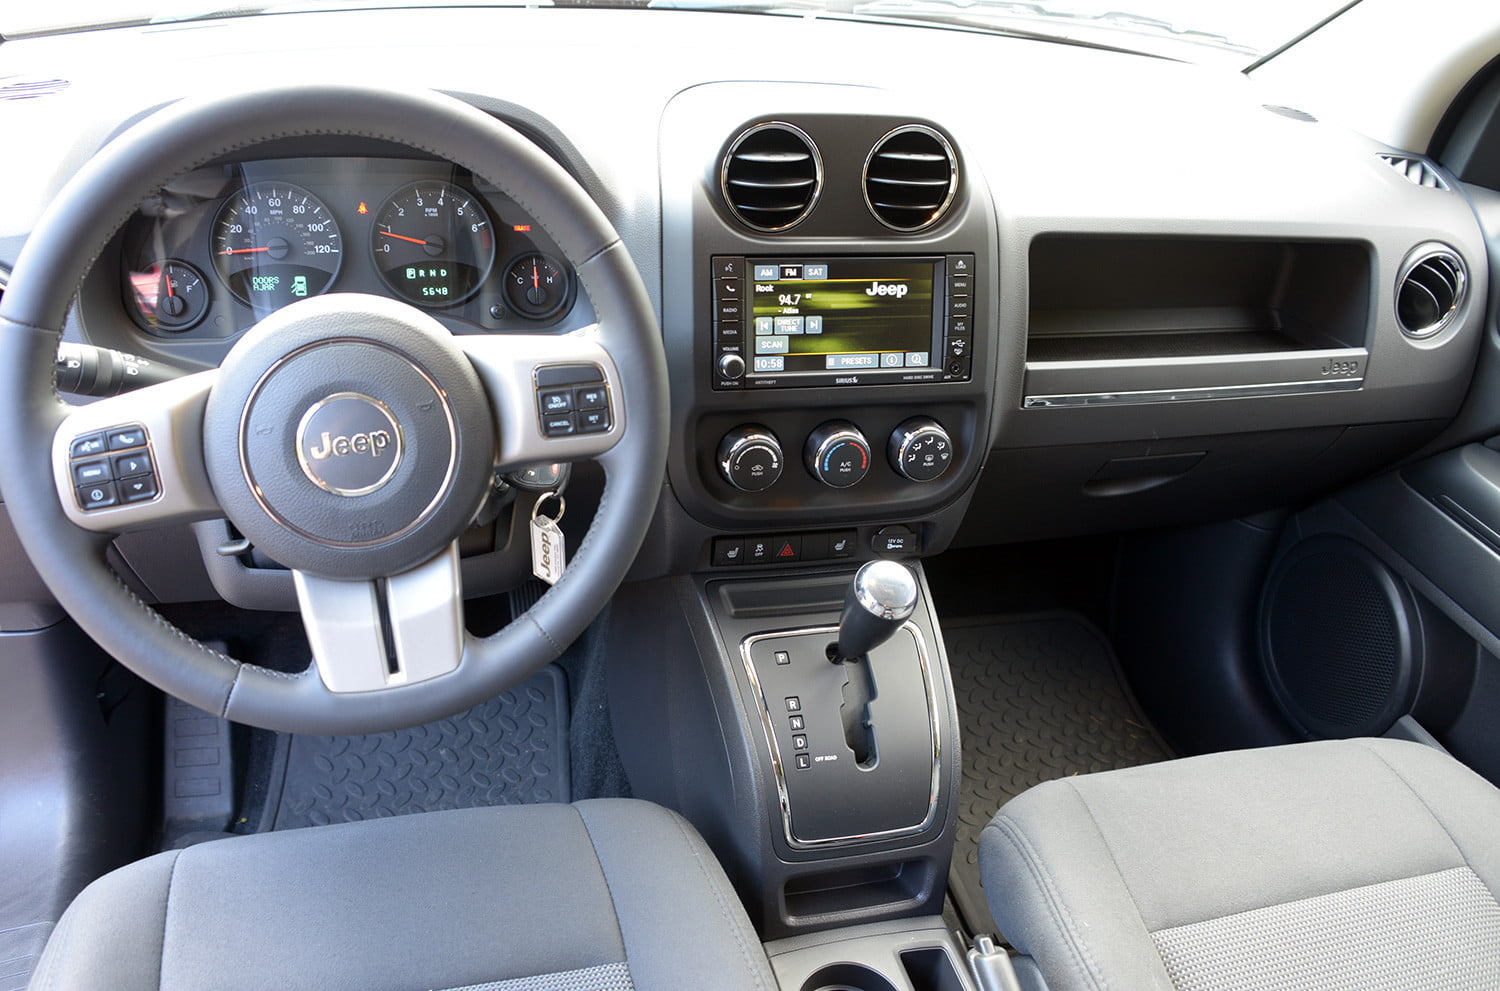 2013 Jeep Compass review | Digital Trends